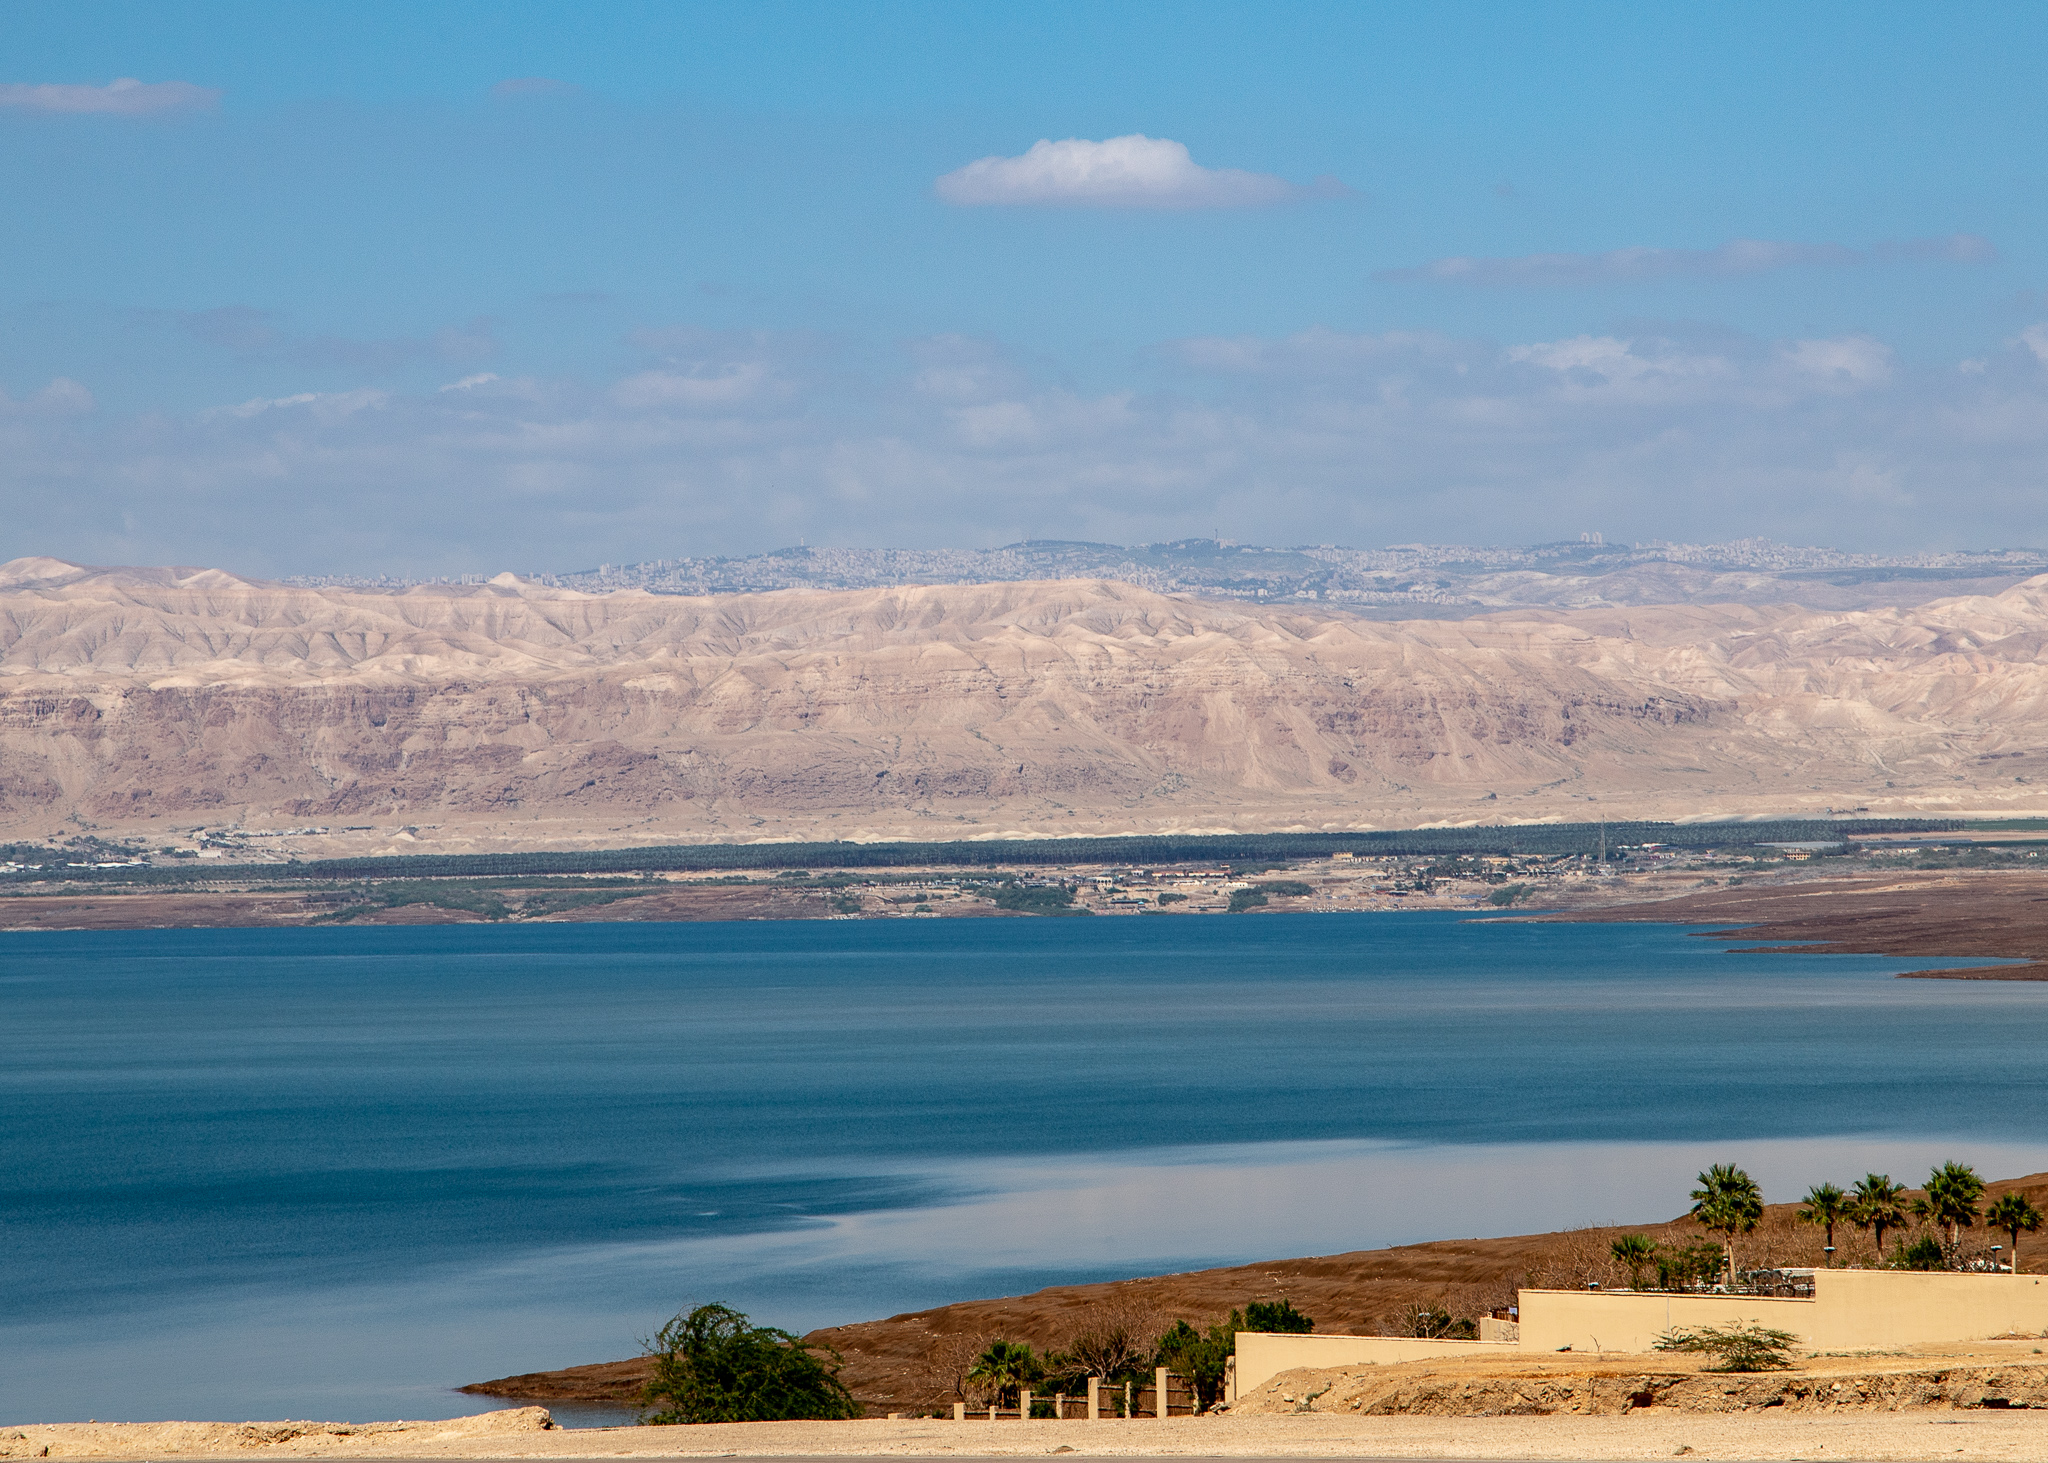 Northern end of the Dead Sea with Israel in the distance